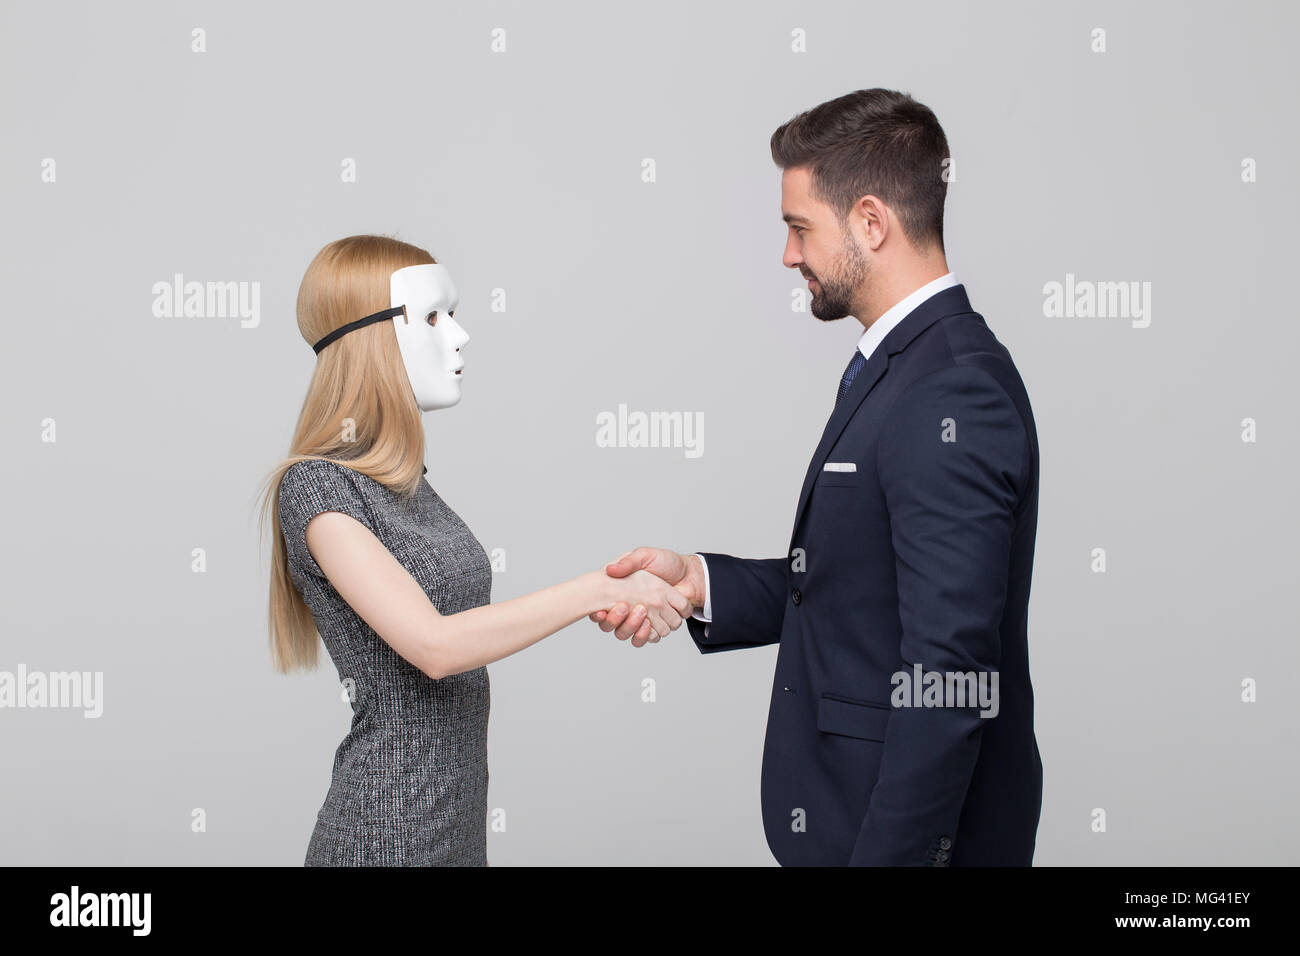 Young stylish man handshake with blonde woman in mask - Stock Image